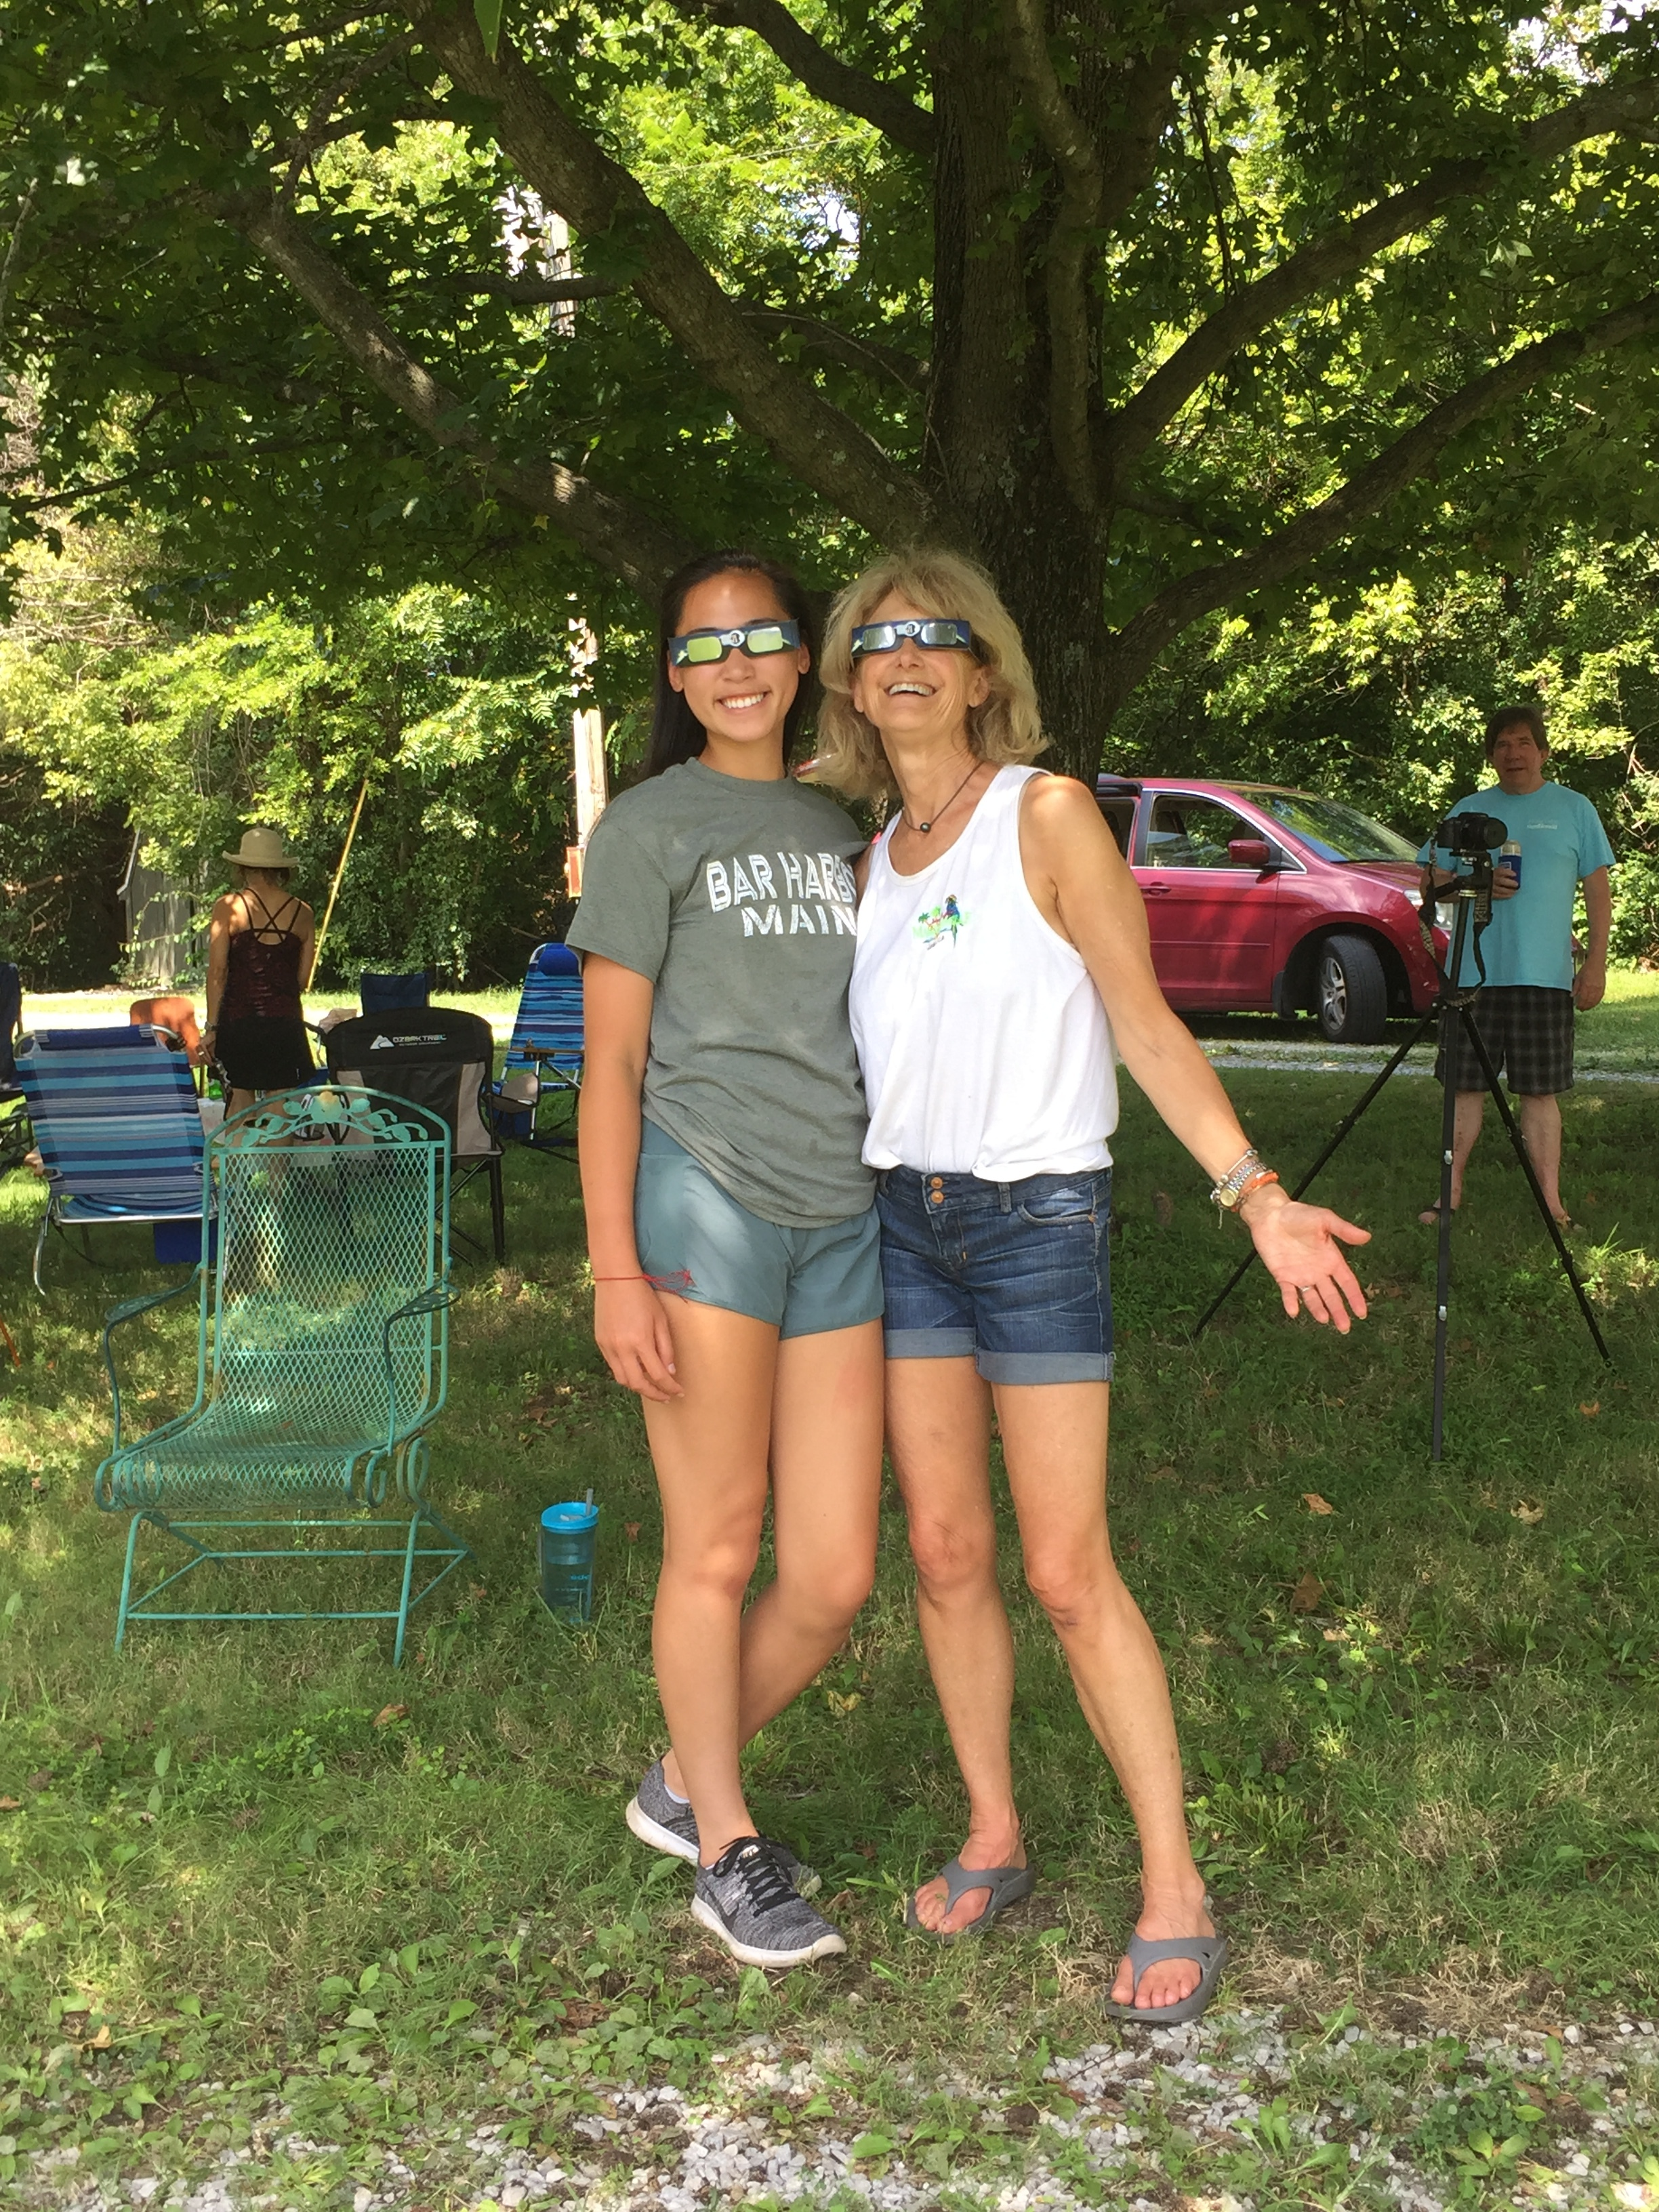 Laura Jane Mellencamp-Murphy and Colby share the Solar Eclipse in Carbondale IL 2017.JPG